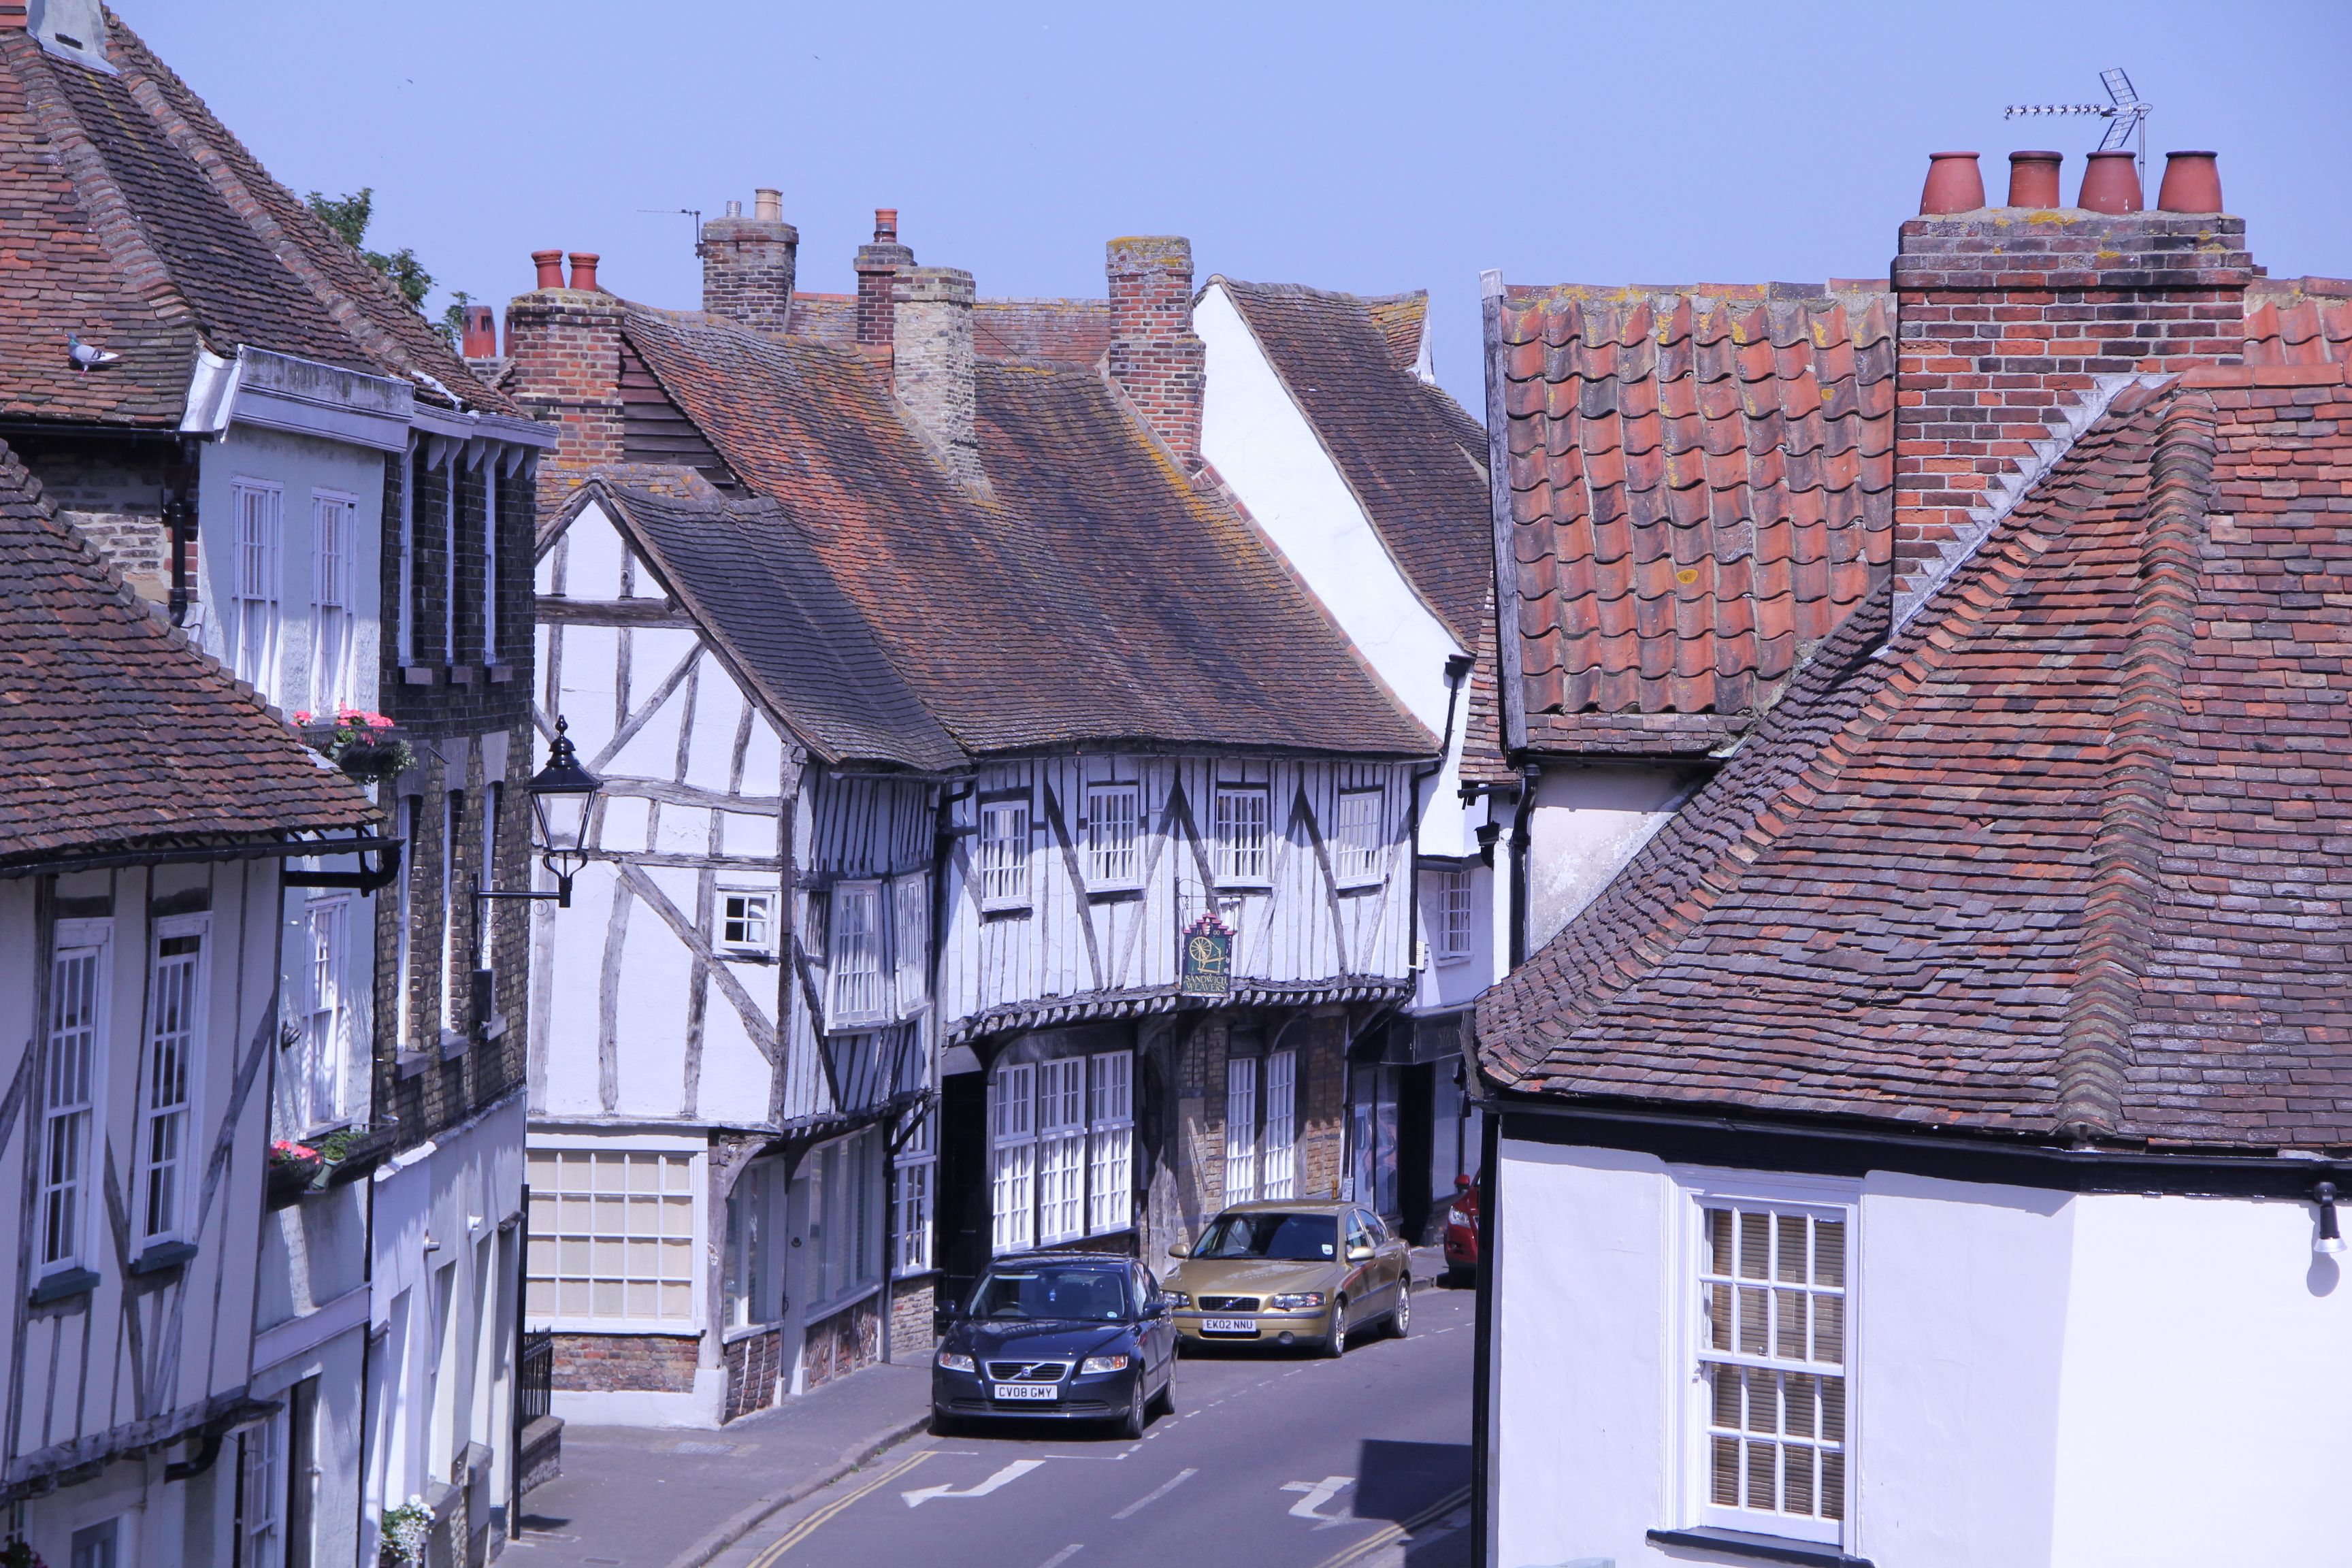 A view of the town of sandwich england houses homes